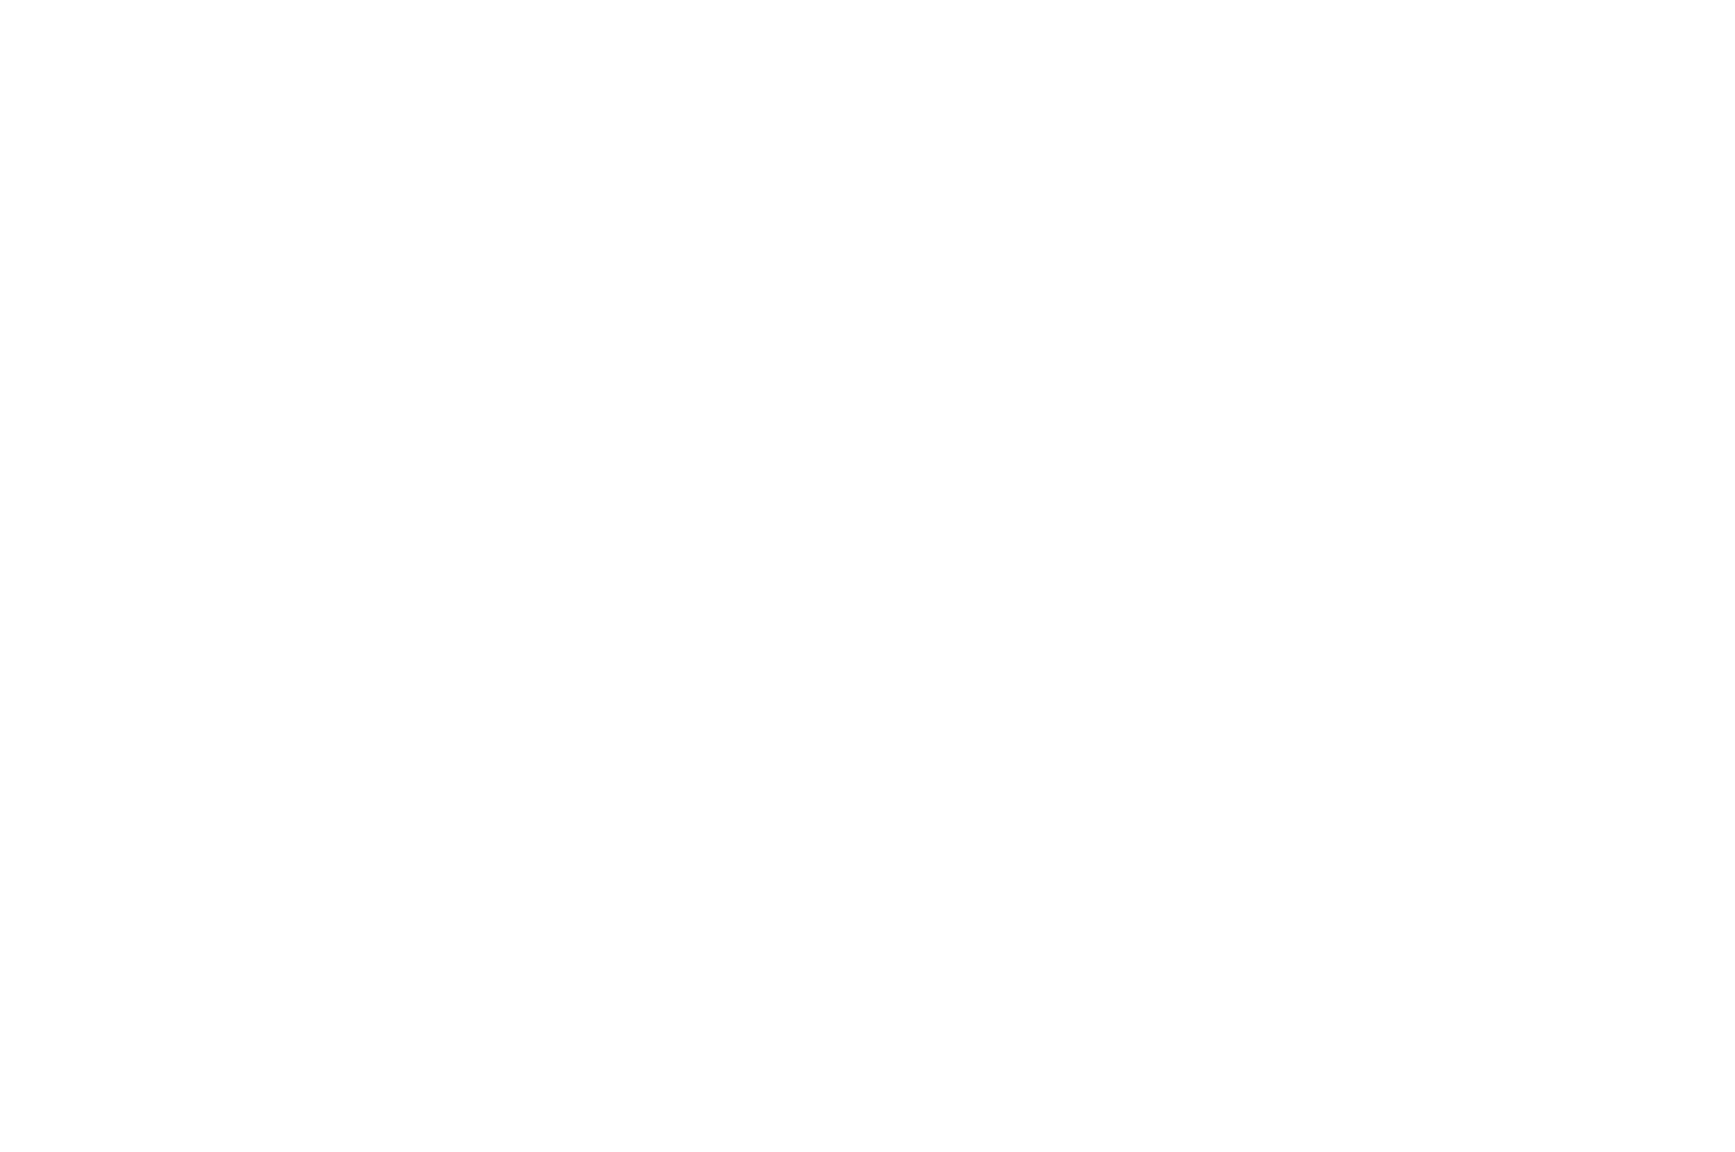 Gold Award Winner - Spotlight Short Film Awards - 2017 white.png